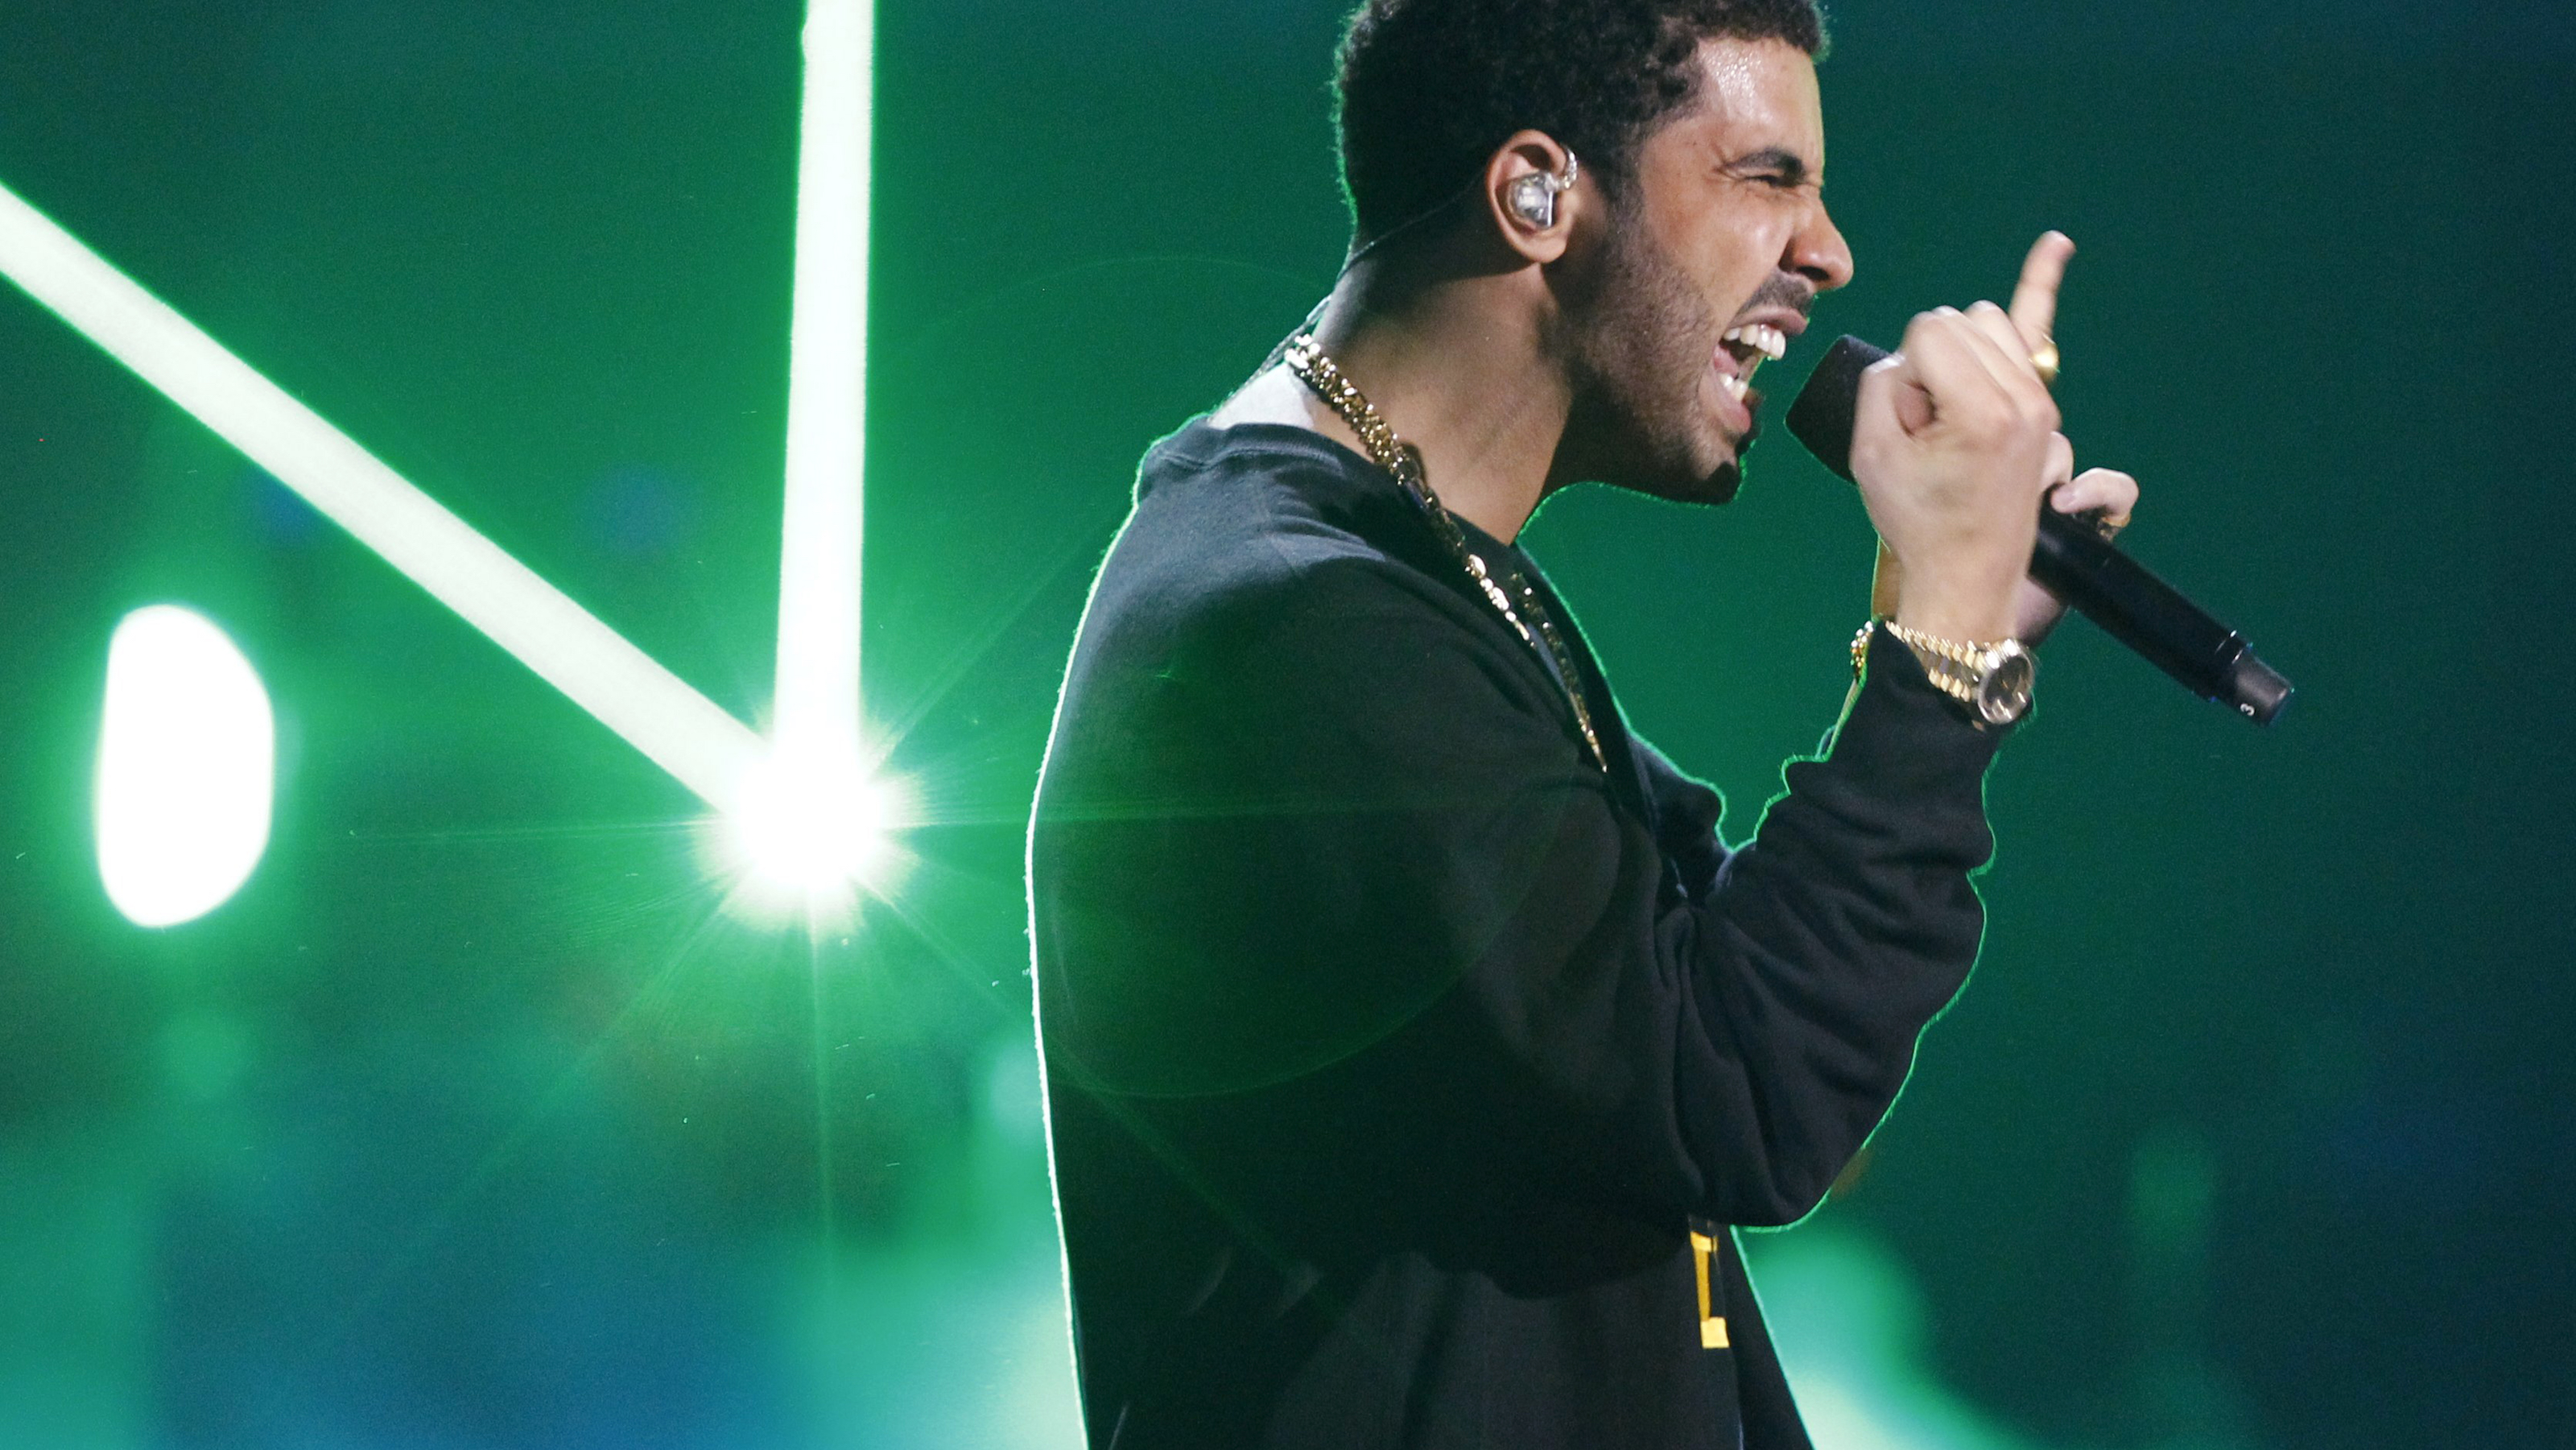 "Drake performs ""I'm On One"" at the 2011 BET Awards in Los Angeles, June 26, 2011.   REUTERS/Mario Anzuoni (UNITED STATES - Tags: ENTERTAINMENT) (BETAWARDS-SHOW) - RTR2O58V"